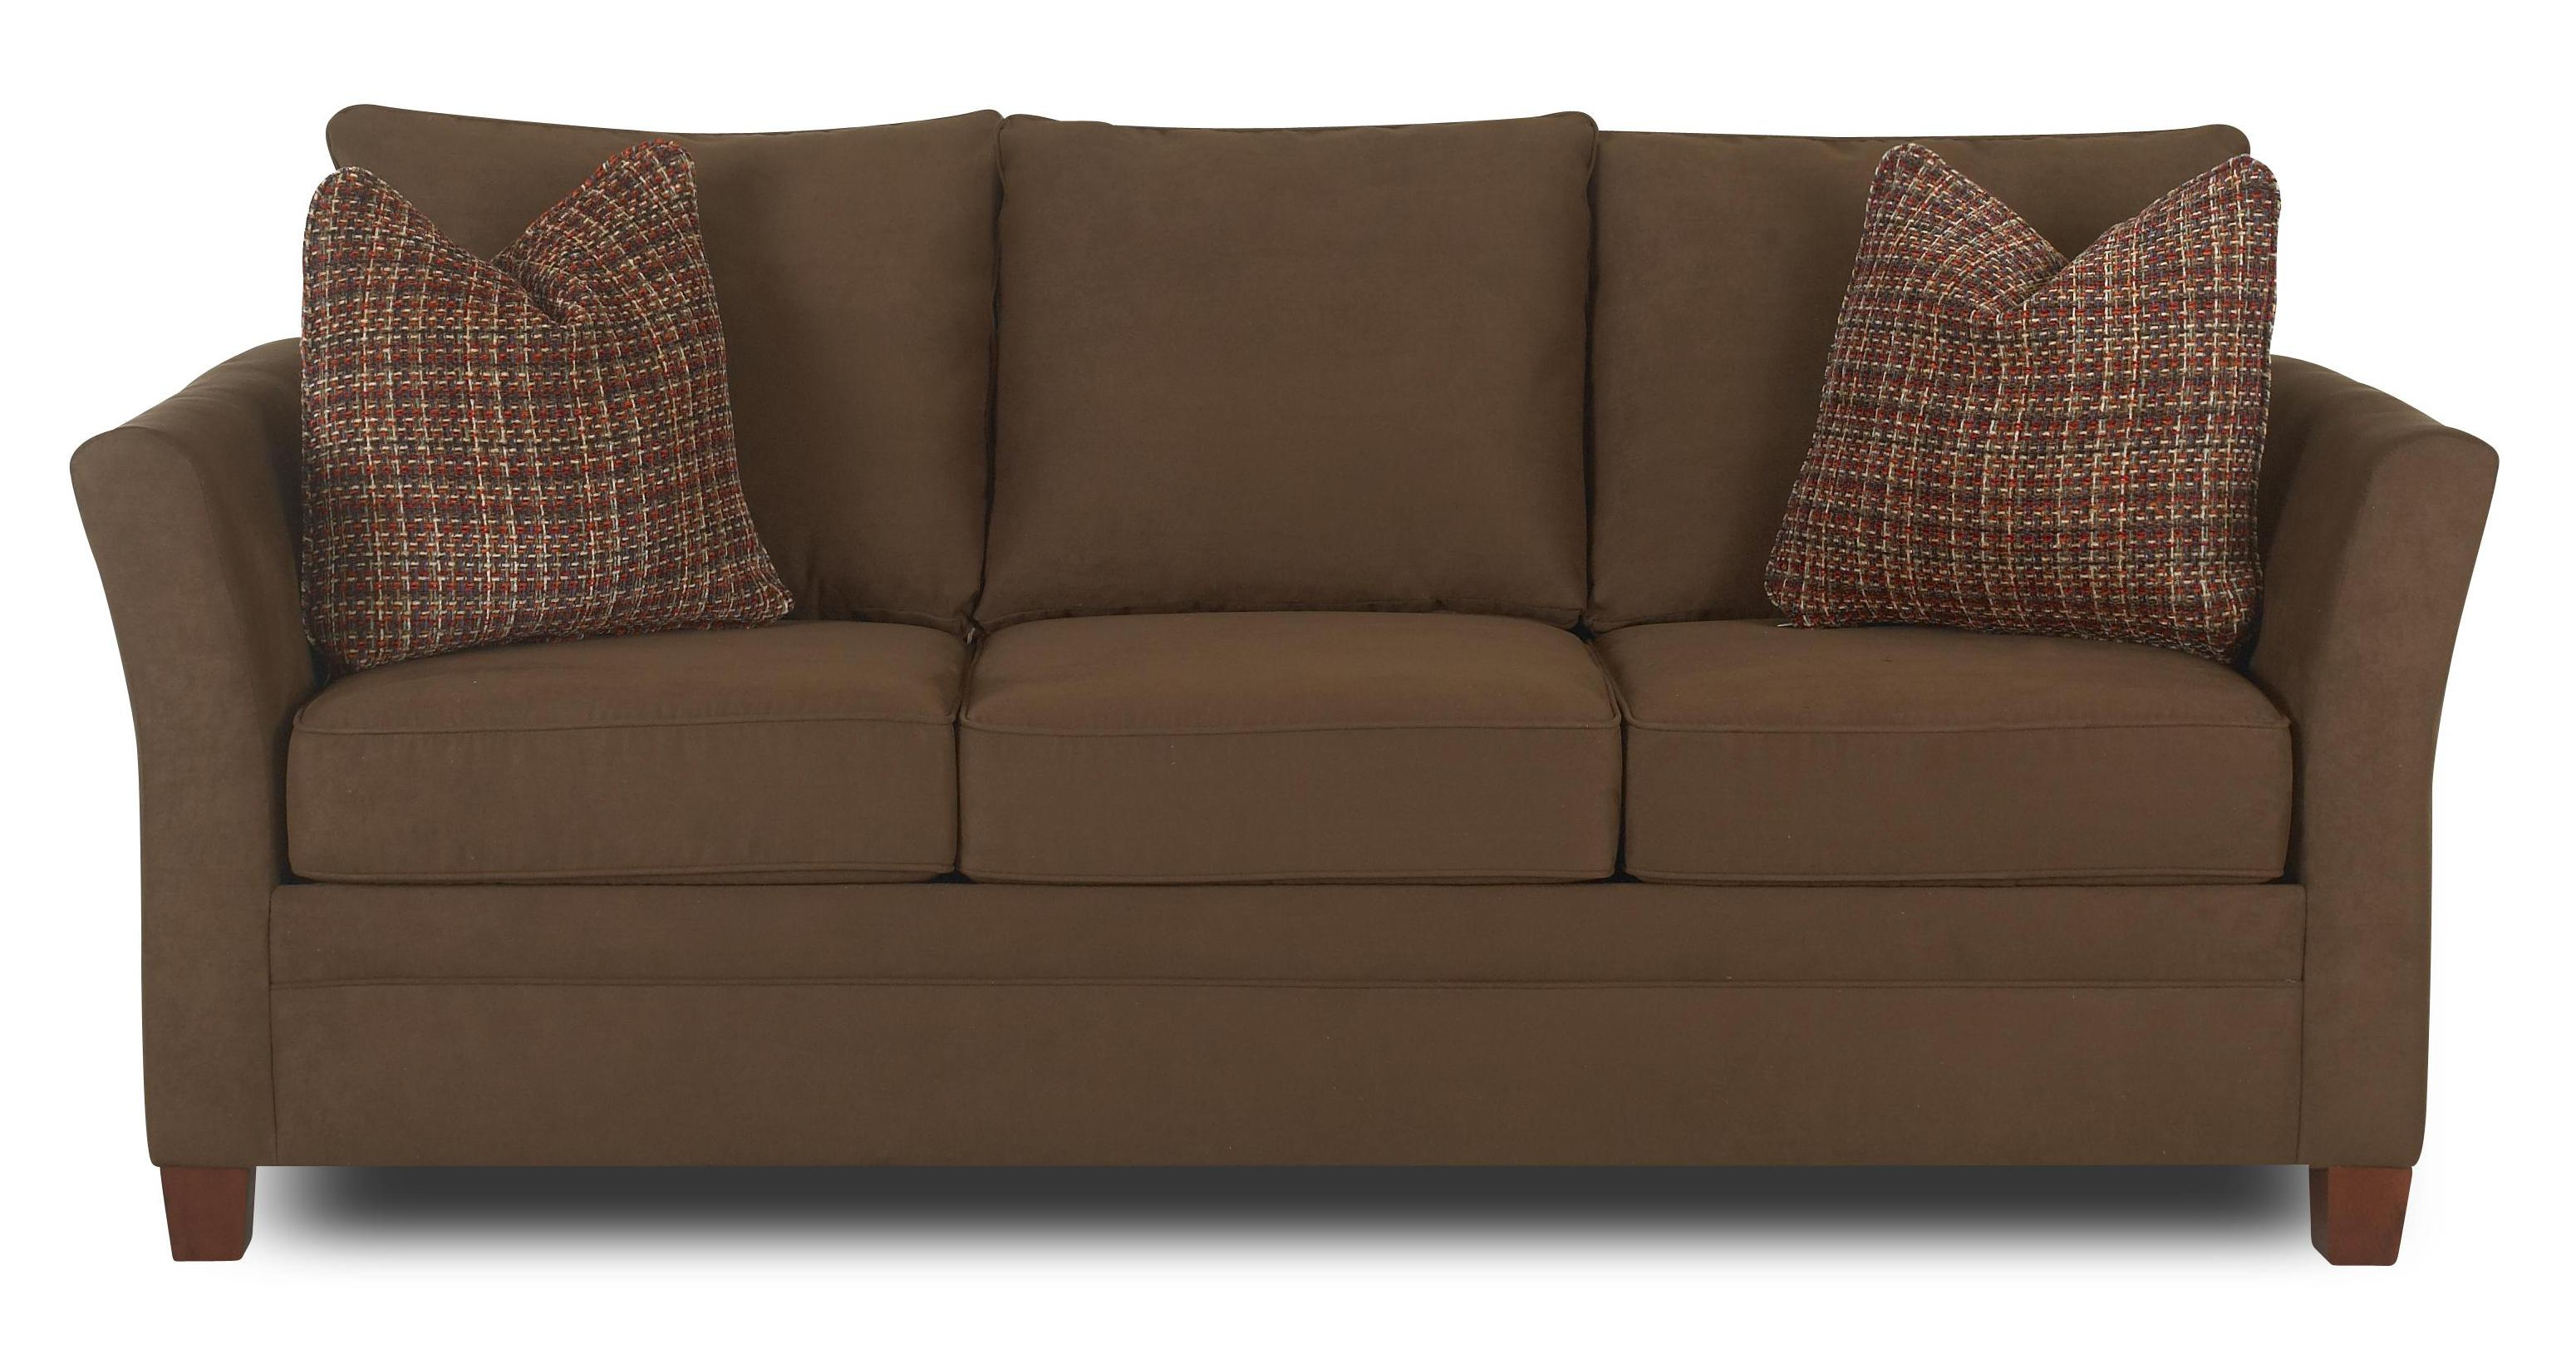 accent pillows for sofa cheap chaise lounge with by klaussner wolf and gardiner